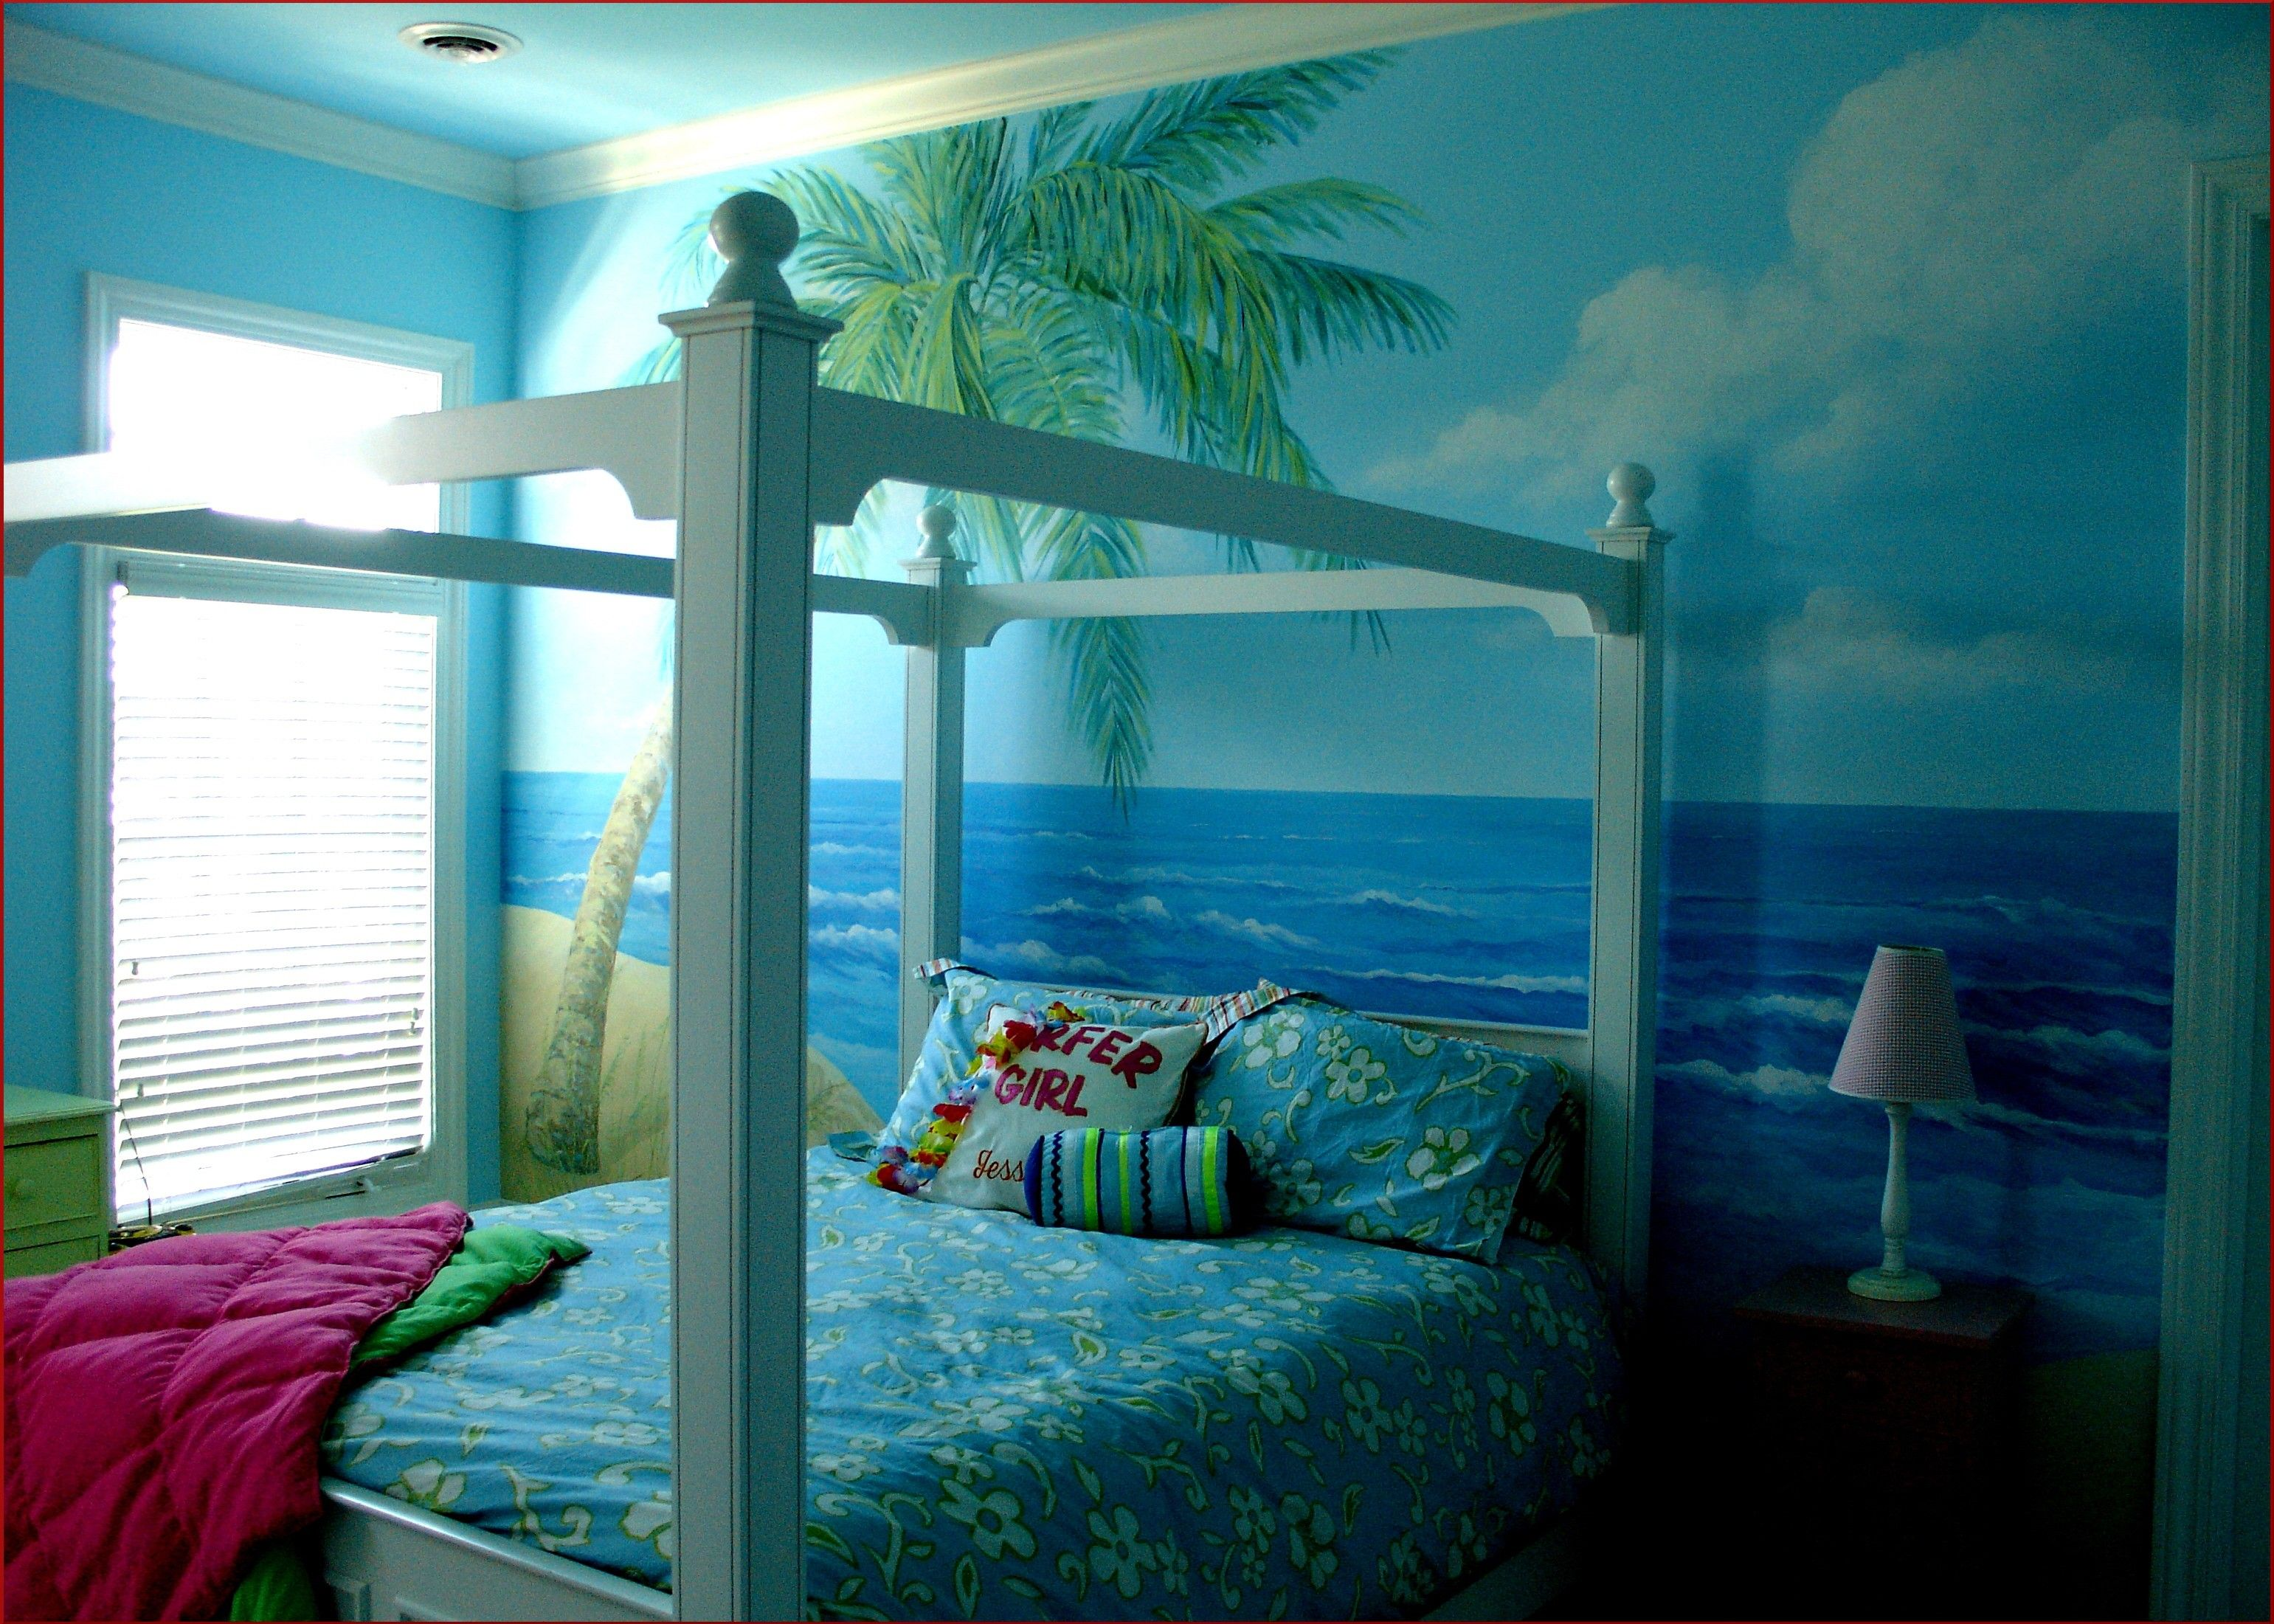 nautical interior design ideas - szukaj w google | best bedroom